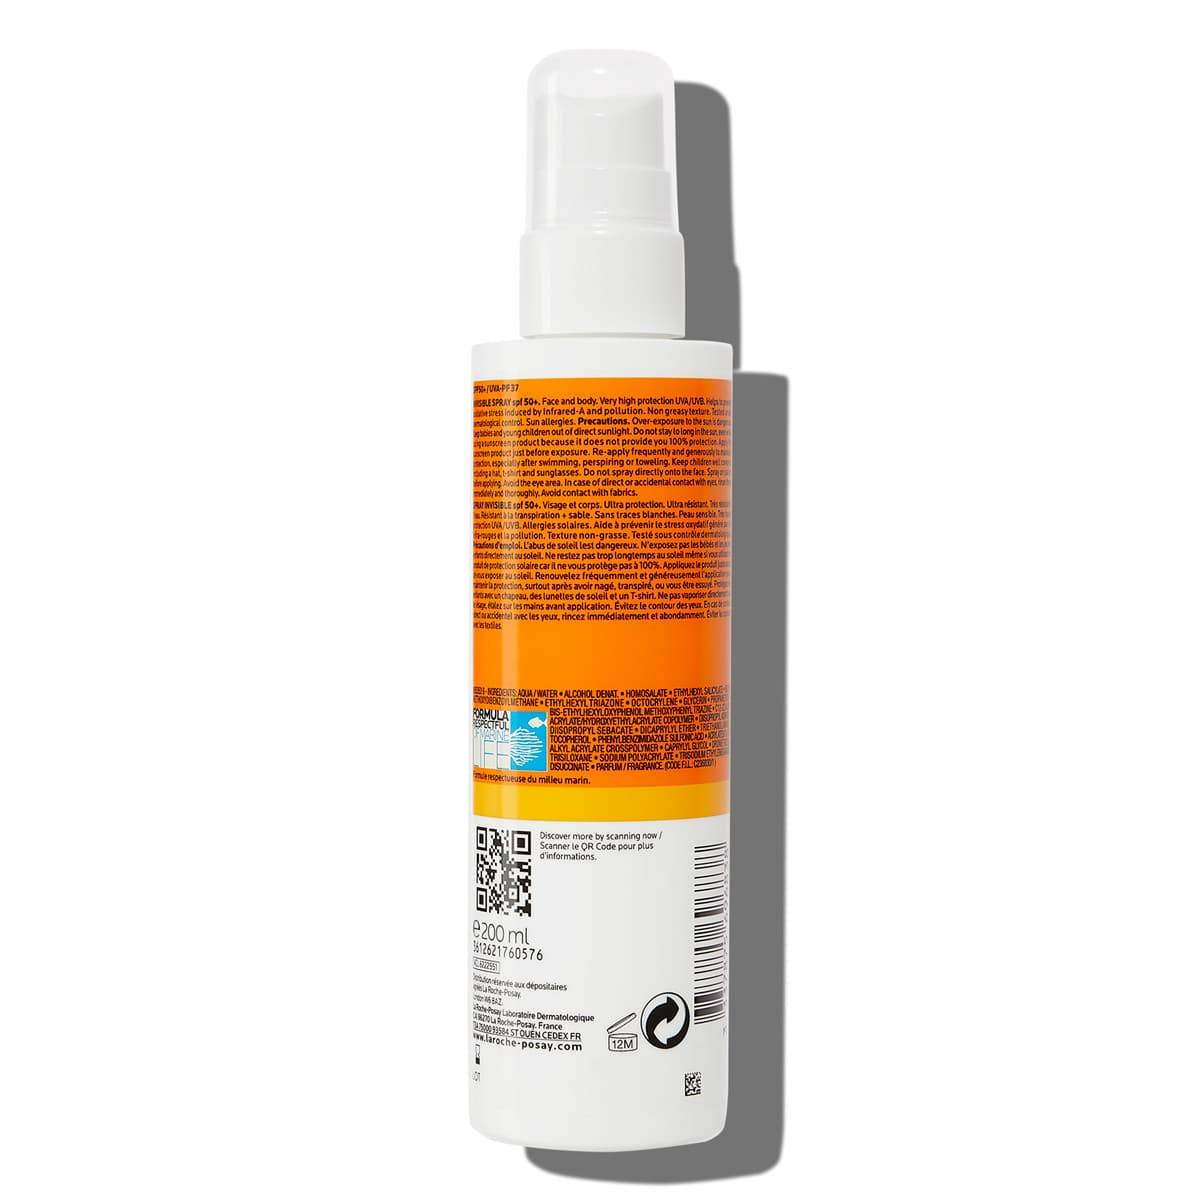 ANTHELIOS INVISIBLE SPRAY SPF50+  ΑΝΤΗΛΙΑΚΟ ΣΩΜΑΤΟΣ